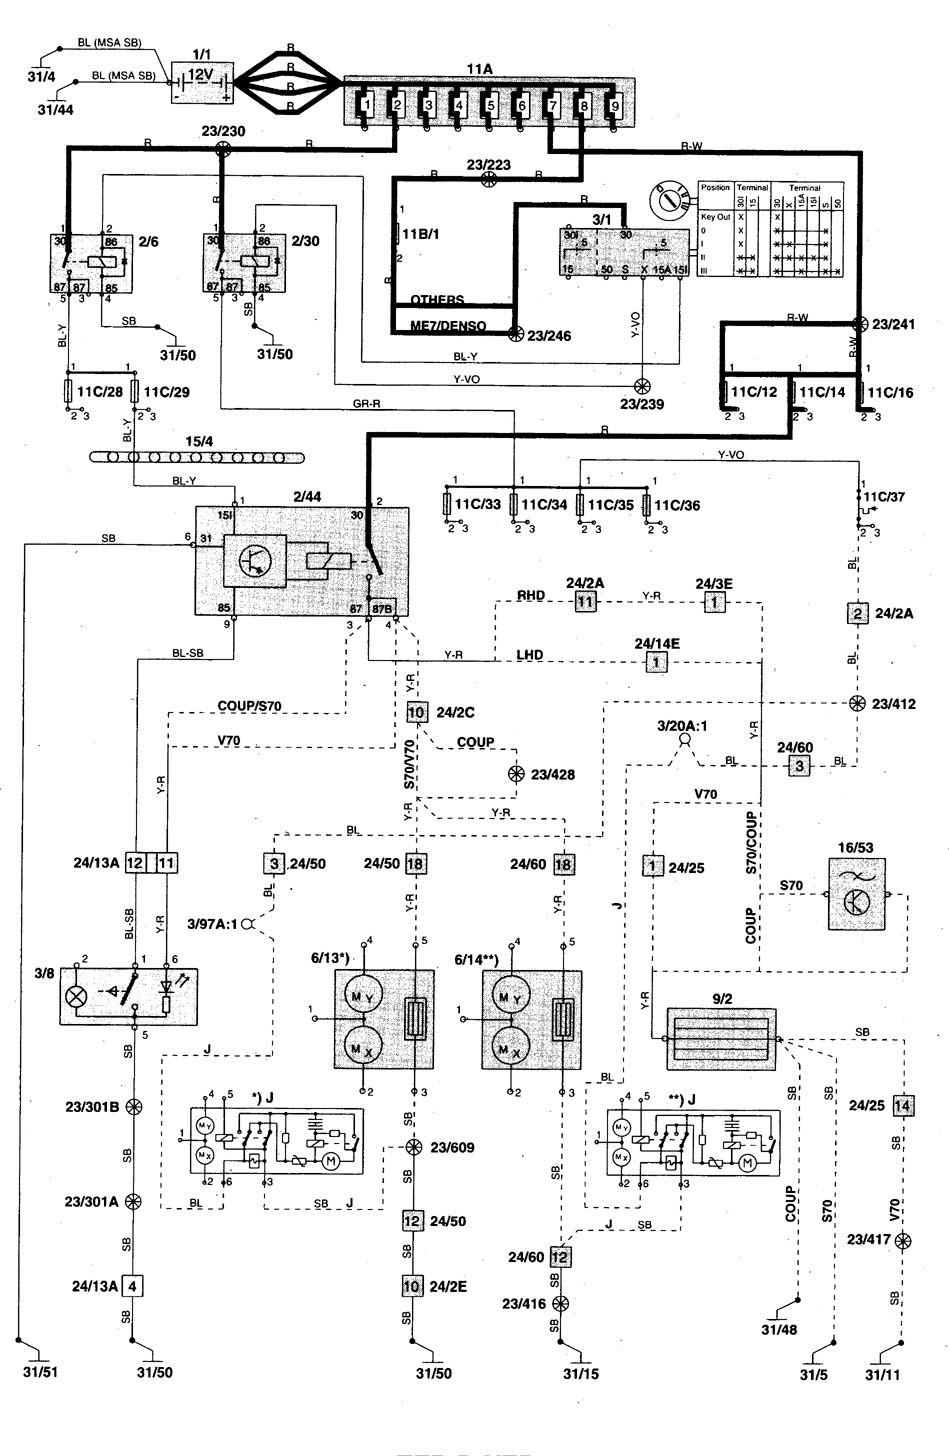 Volvo Rse Wiring Diagram Trusted Diagrams B7r Xc90 Dvd Headrest Service Manual How To Remove 2003 1997 Mercedes Radio